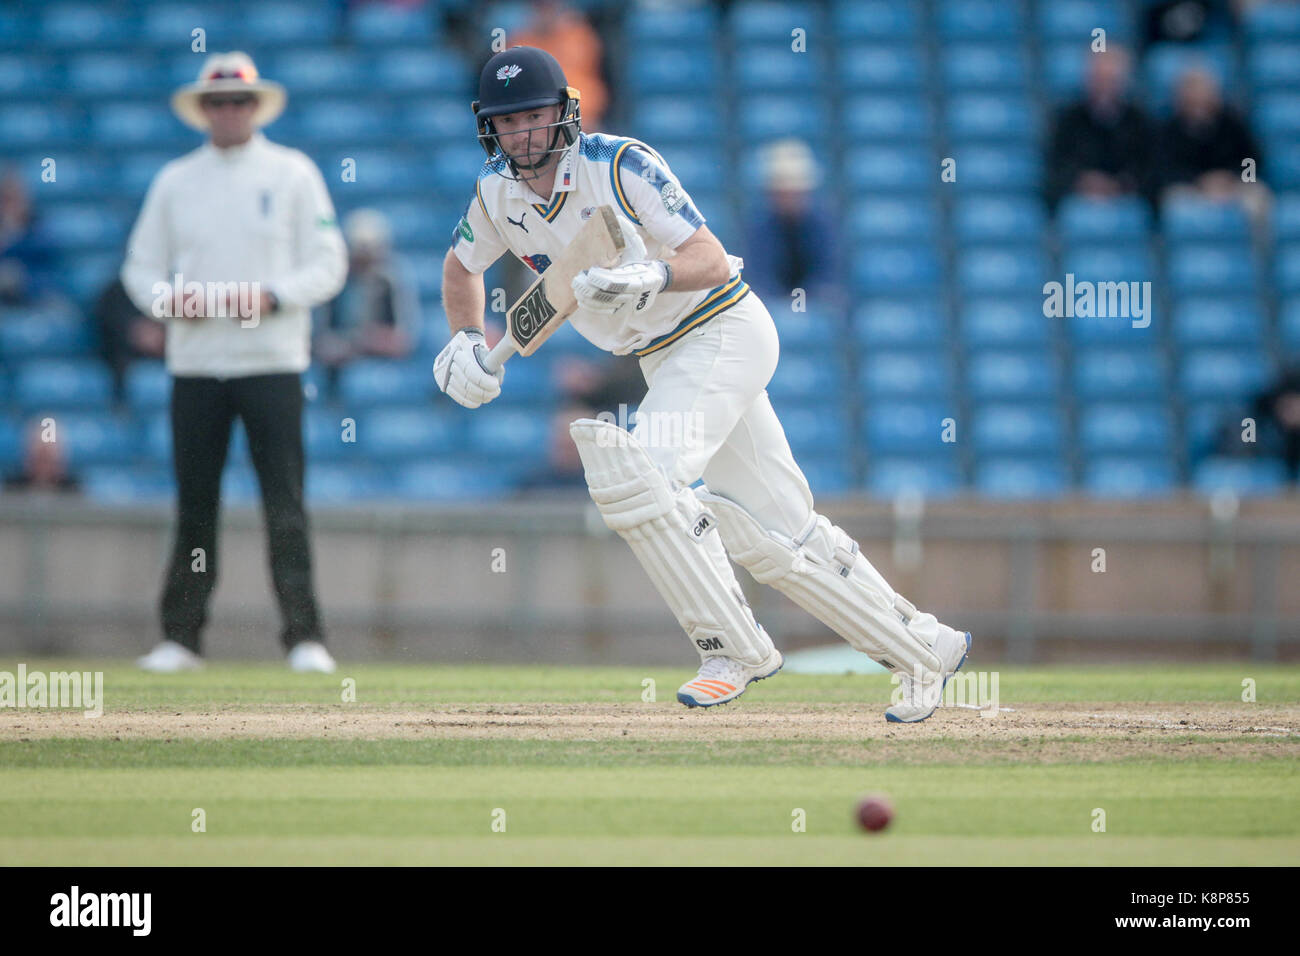 Leeds, UK. 20th Sep, 2017. Yorkshire CCC v Warwickshire CCC on Wednesday 20 September 2017 at Specsavers County - Stock Image